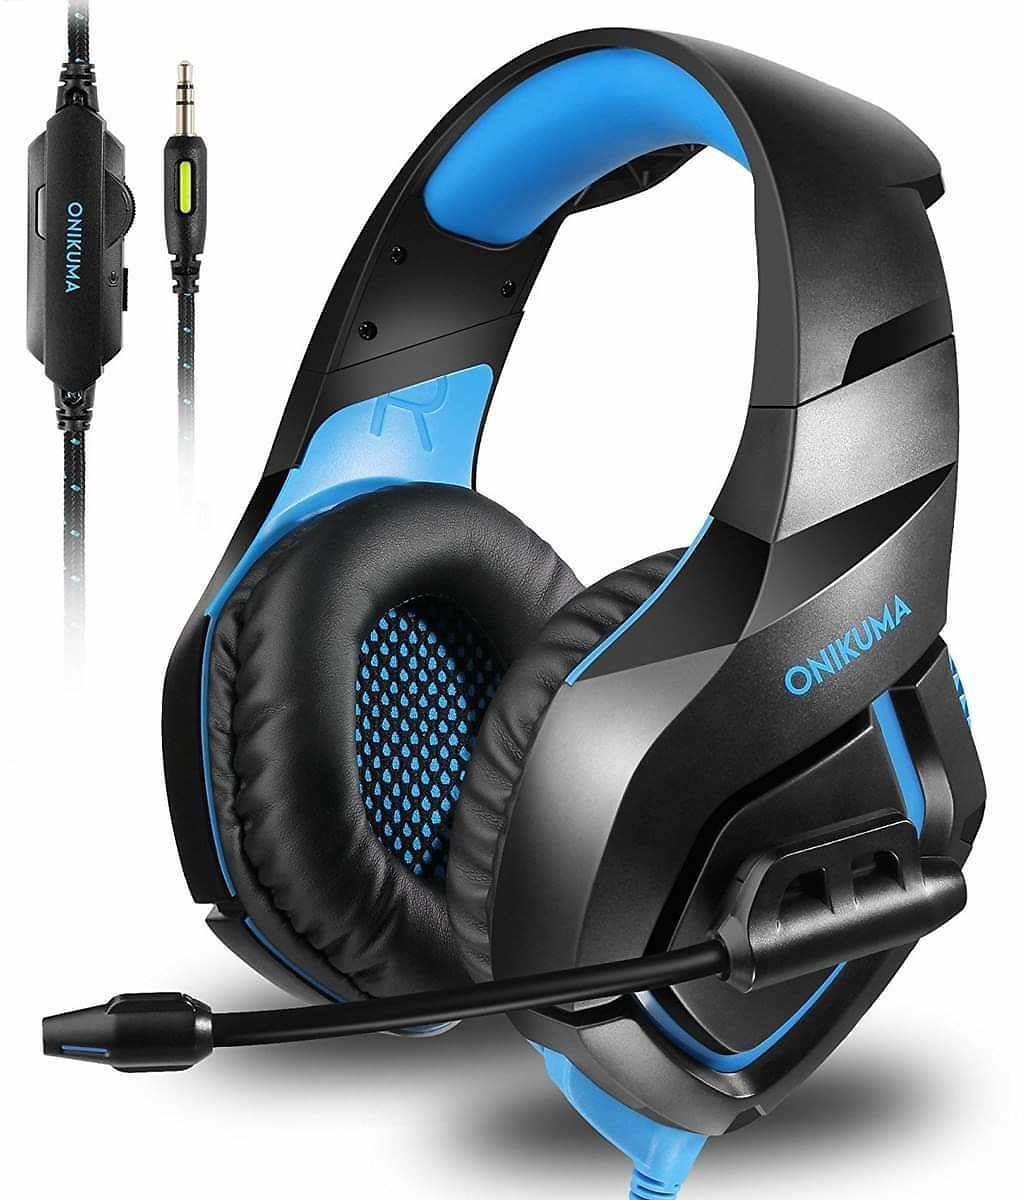 Gaming Headset for PS4 Xbox One, Gaming Headphones with Mic Stereo Surround Noise Reduction LED Lights